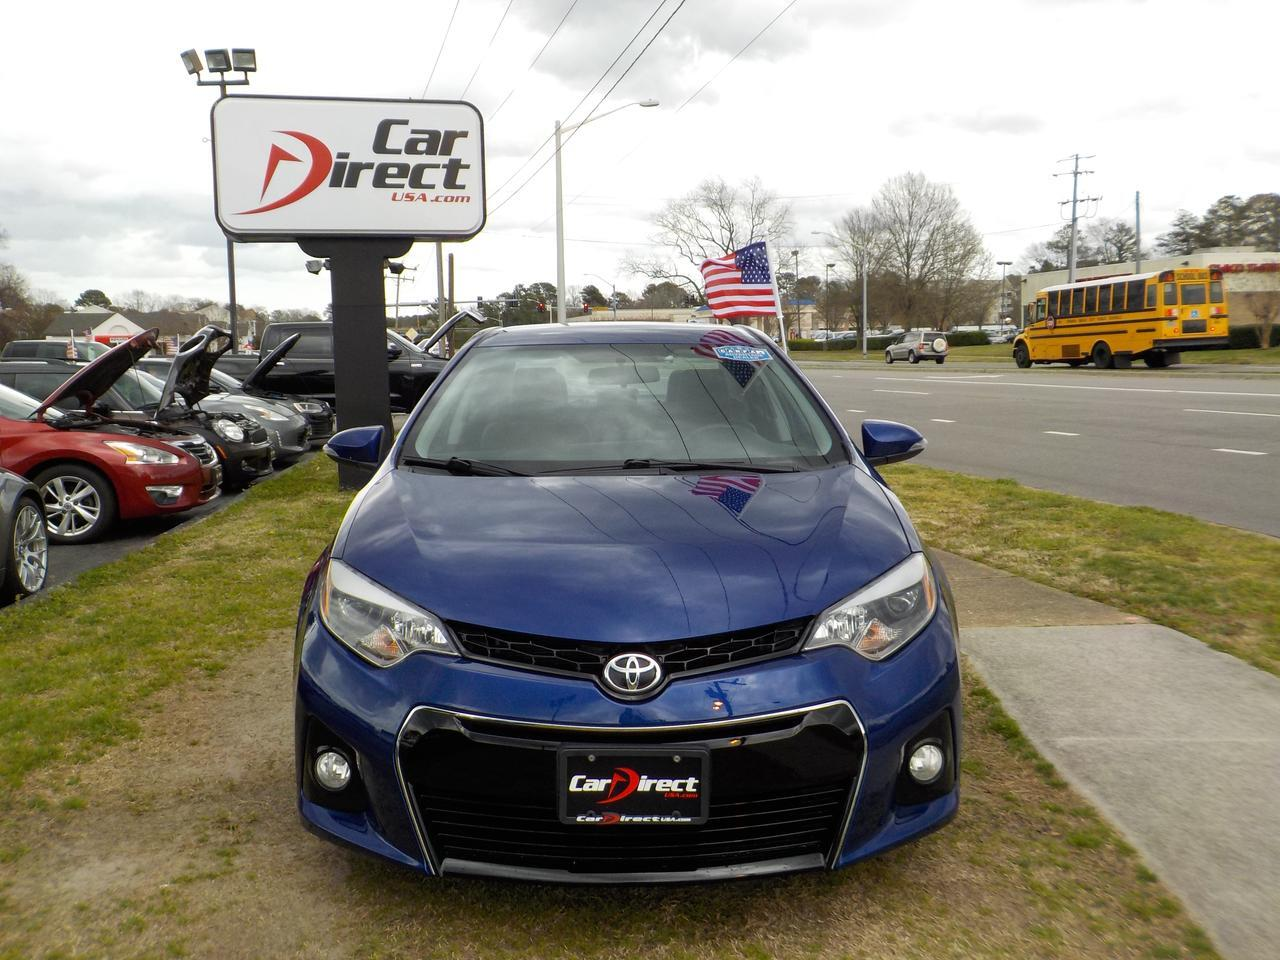 2016 TOYOTA COROLLA S PLUS CVT, WARRANTY, BLUETOOTH, BACKUP CAMERA, REAR SPOILER, AUX PORT, DAYTIME RUNNING LIGHTS! Virginia Beach VA